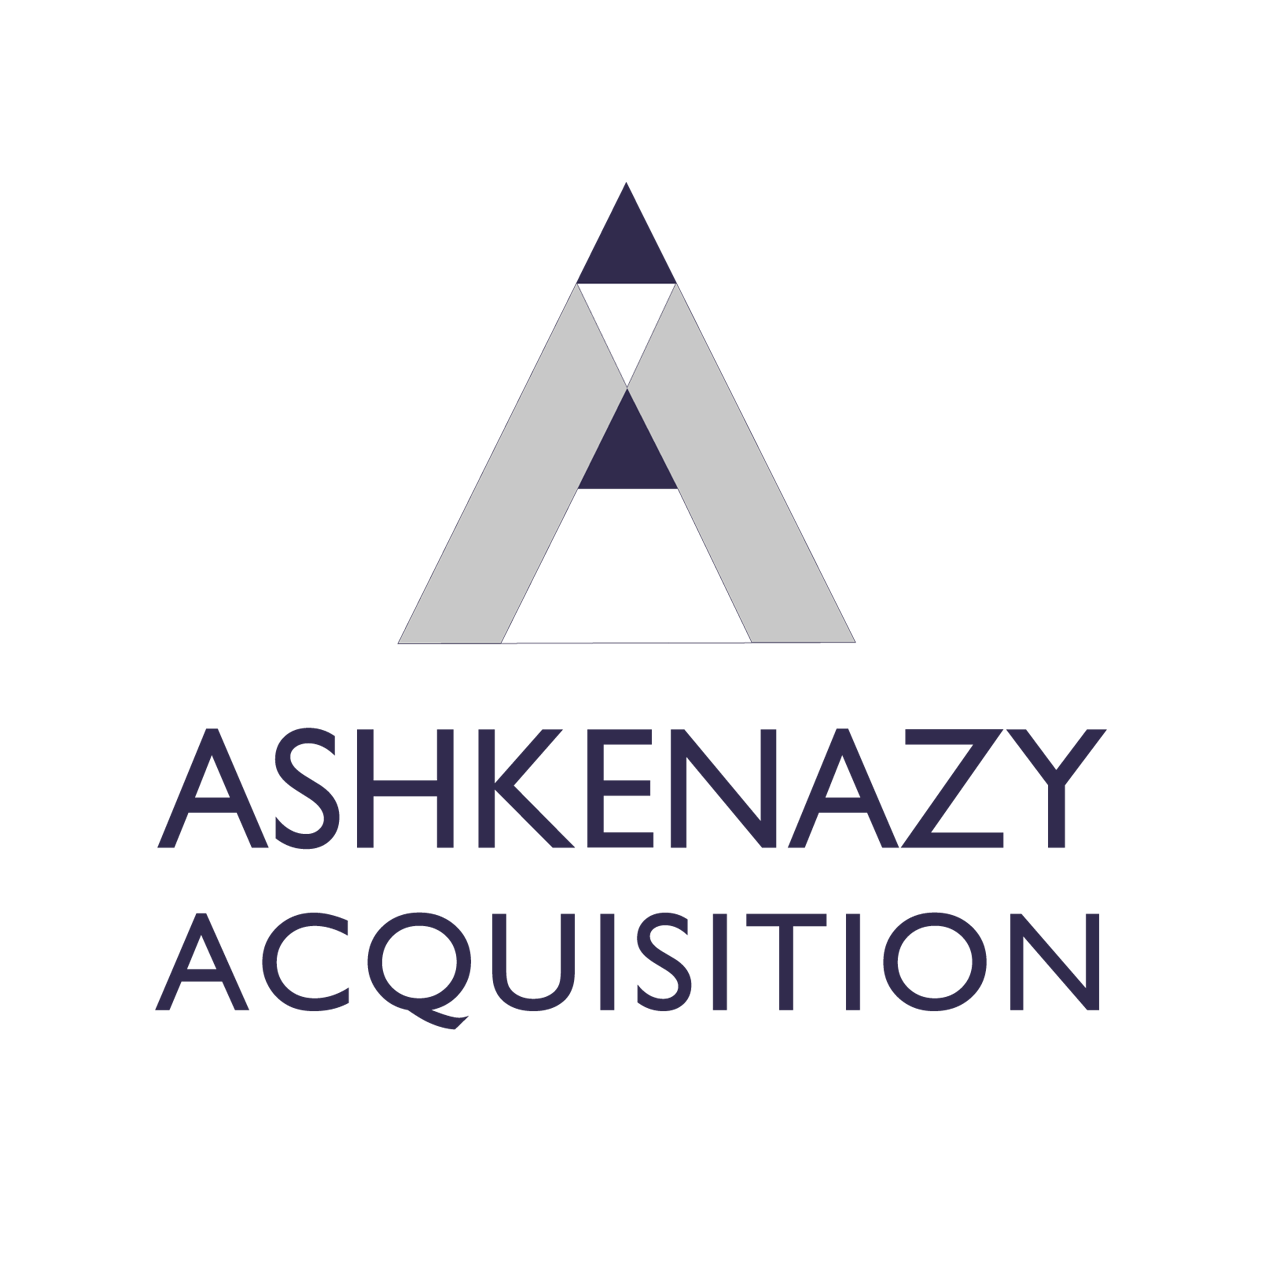 Ashkenazy Acquisition